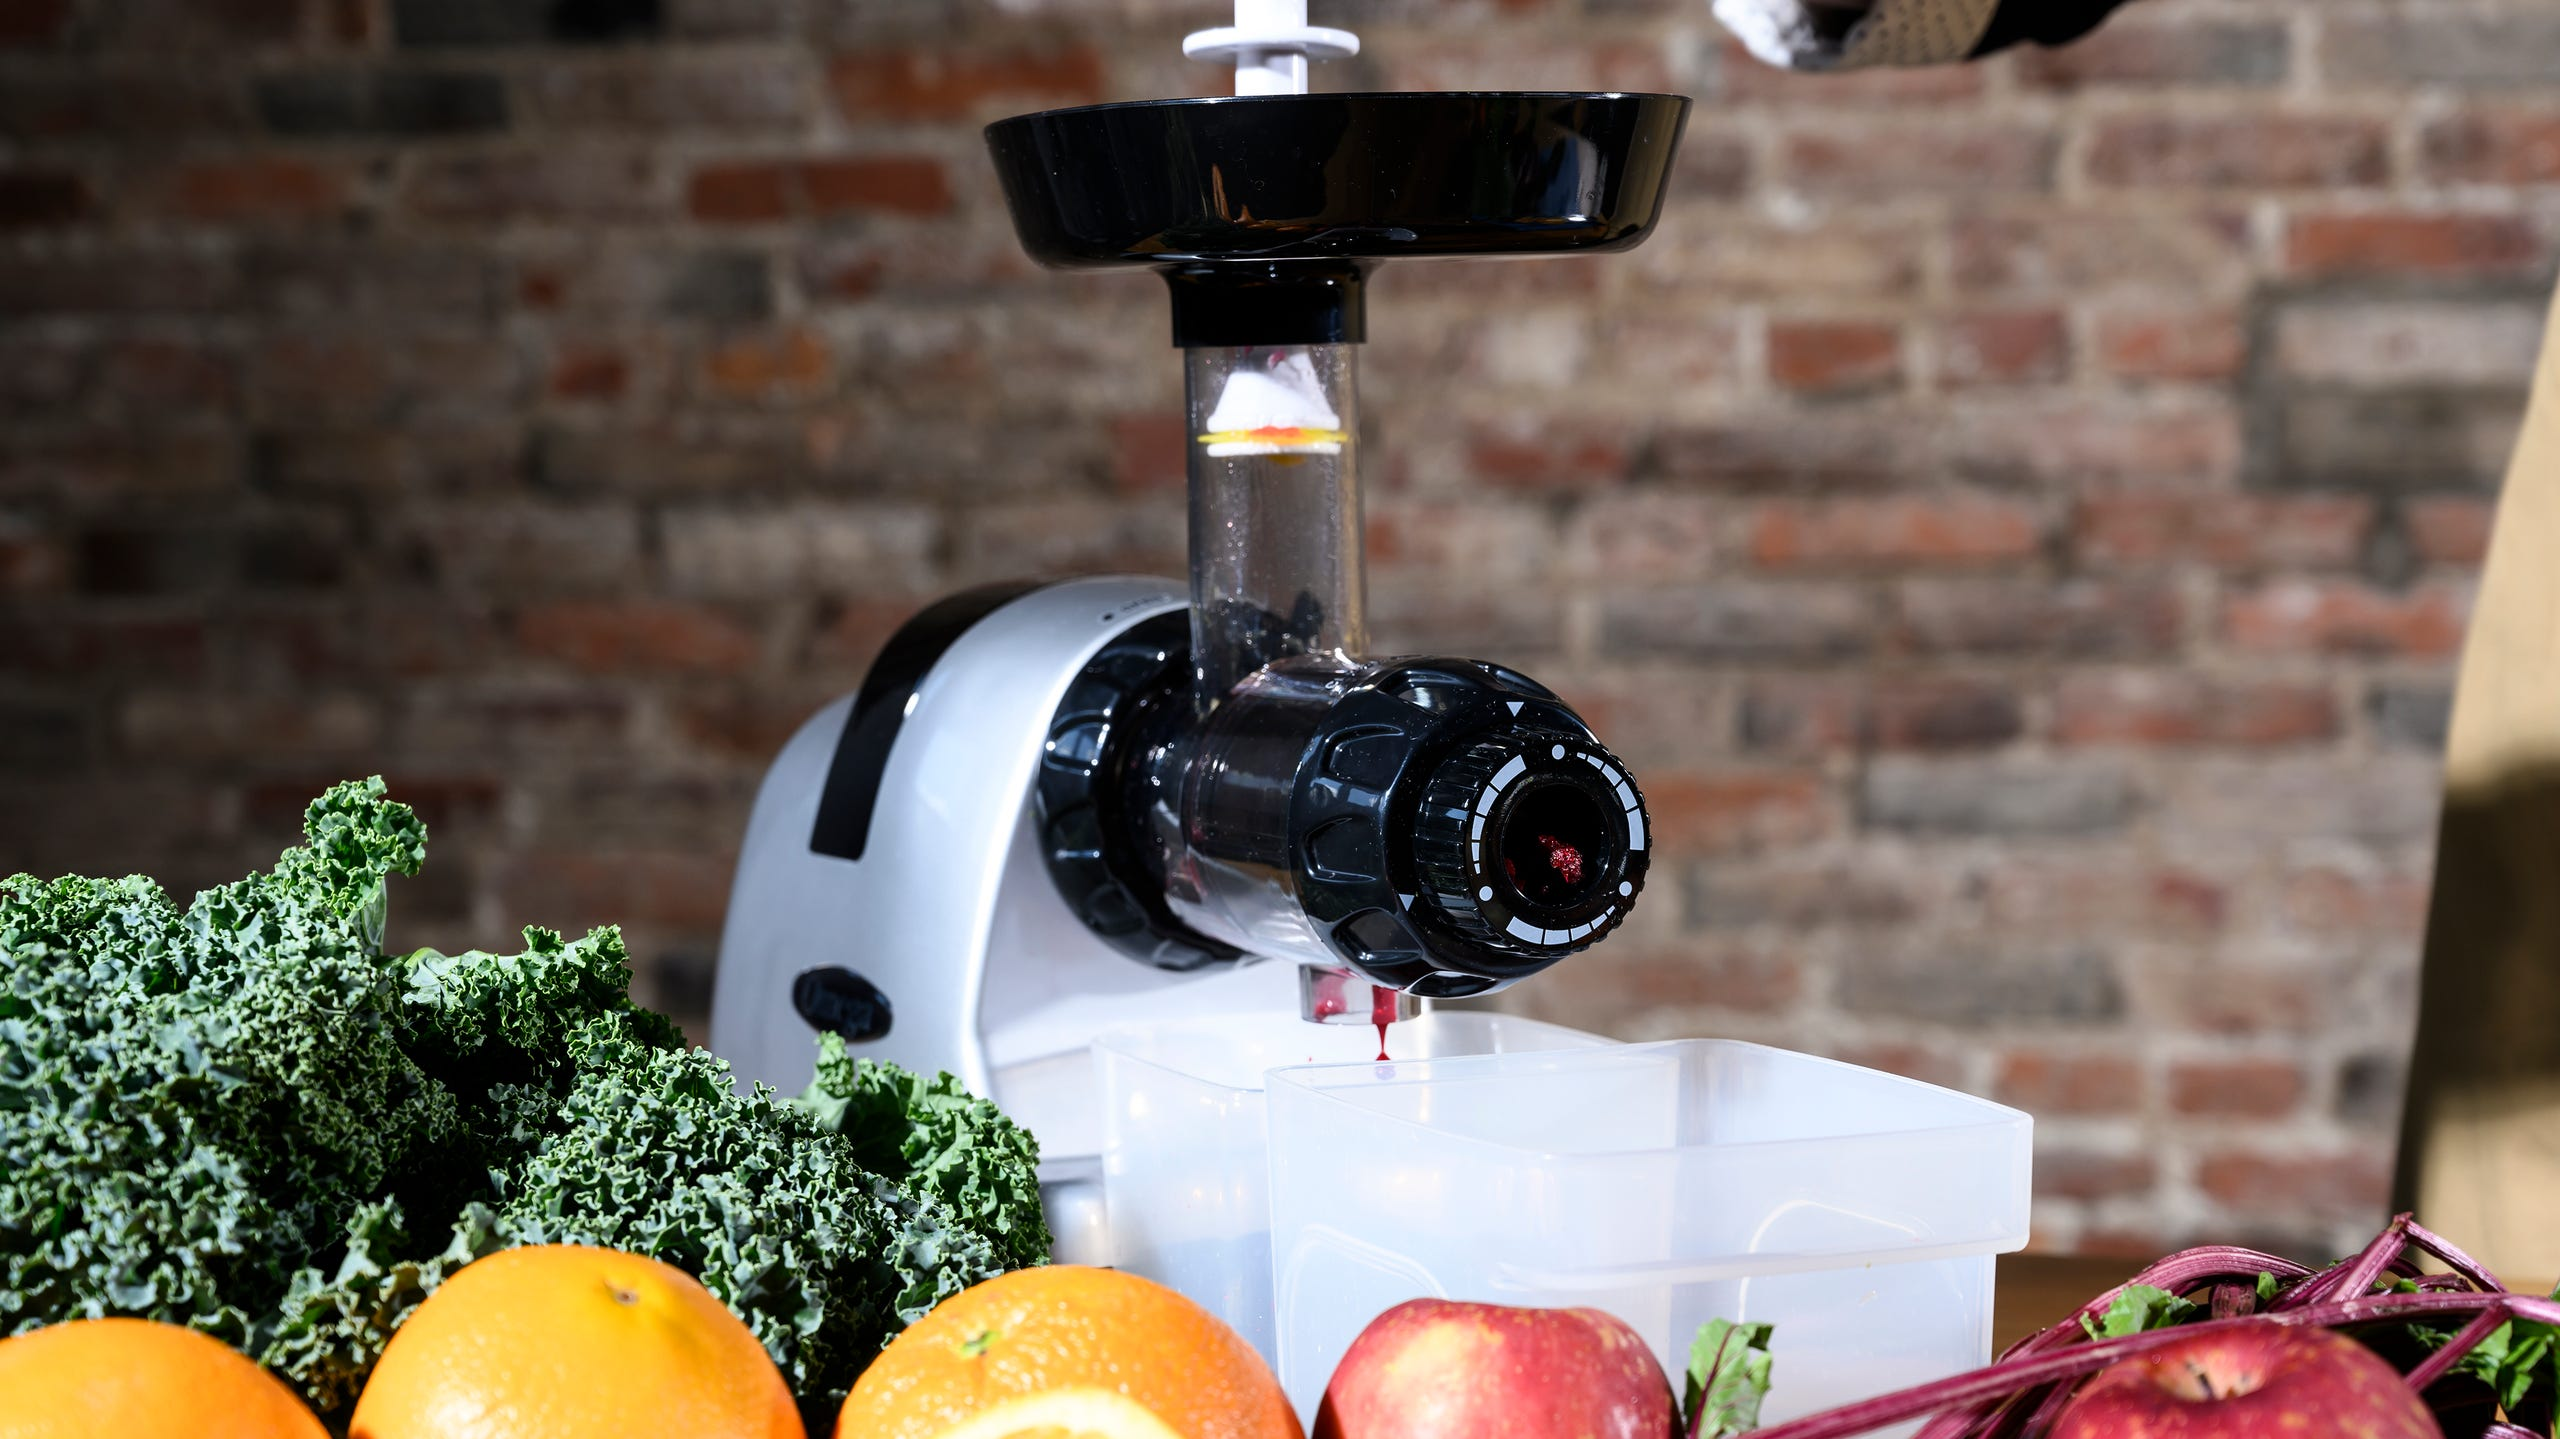 "They always say that orange juice is good for you when you're sick, but sometimes that old carton of Tropicana just won't cut it. For a healthier version, this juicer by Omega will churn out high yields of some of the freshest juice you'll ever taste, which is why we named it <a href=""https://www.reviewed.com/home-outdoors/best-right-now/the-best-juicers?utm_source=usat&amp;utm_medium=referral&amp;utm_campaign=collab"" target=""_blank"">the best&nbsp;juicer of 2019</a>. While it's on the expensive side, just think of all the use you'll get out of it not just when you're sick, but for breakfasts, brunches, and more. (<strong><a href=""https://www.amazon.com/Omega-J8006HDS-Dual-Stage-Masticating-Revolutions/dp/B07GWNHDXH/ref=as_li_ss_tl?ie=UTF8&amp;linkCode=ll1&amp;tag=usatgallery-20&amp;linkId=b5b4db81f9d9402a181816b8b88b2a9b&amp;language=en_US"" target=""_blank"">$298.98 on Amazon</a></strong>)"